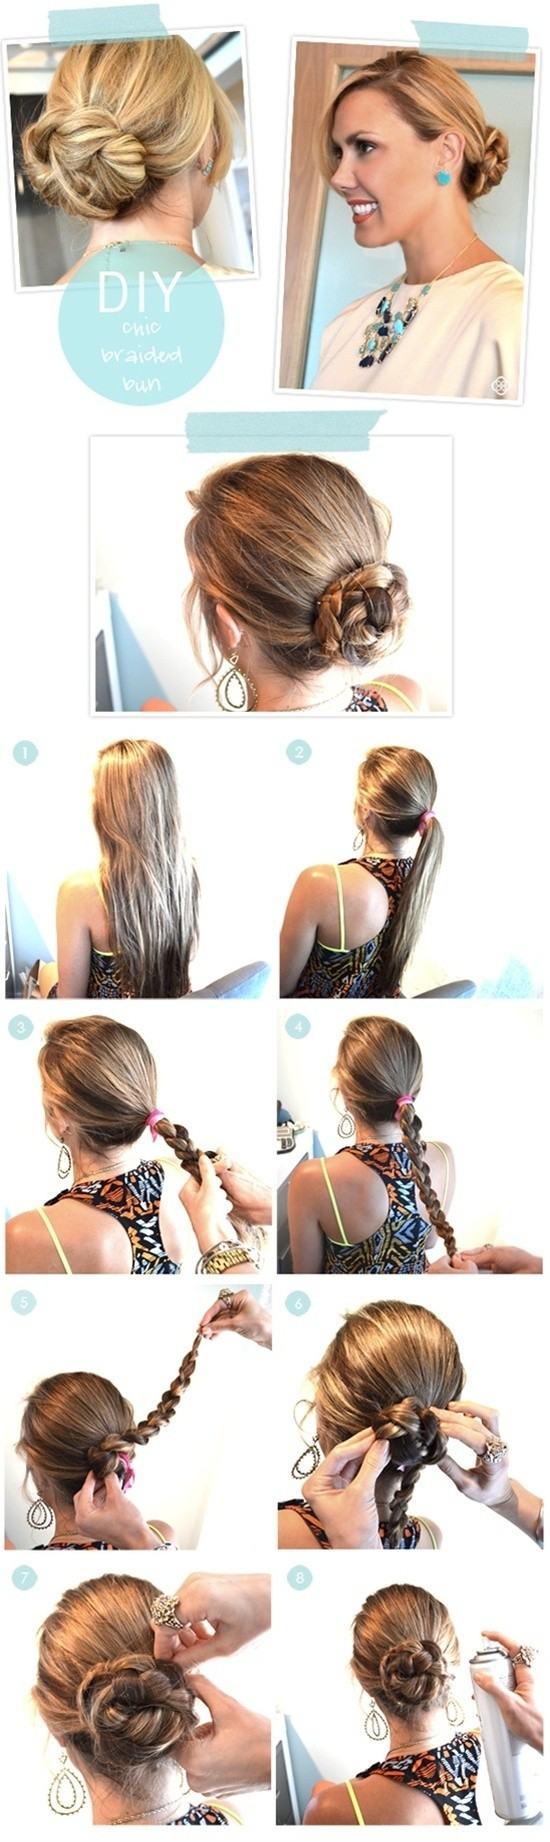 Stupendous Step By Step Hairstyles For Long Hair Long Hairstyles Ideas Short Hairstyles Gunalazisus